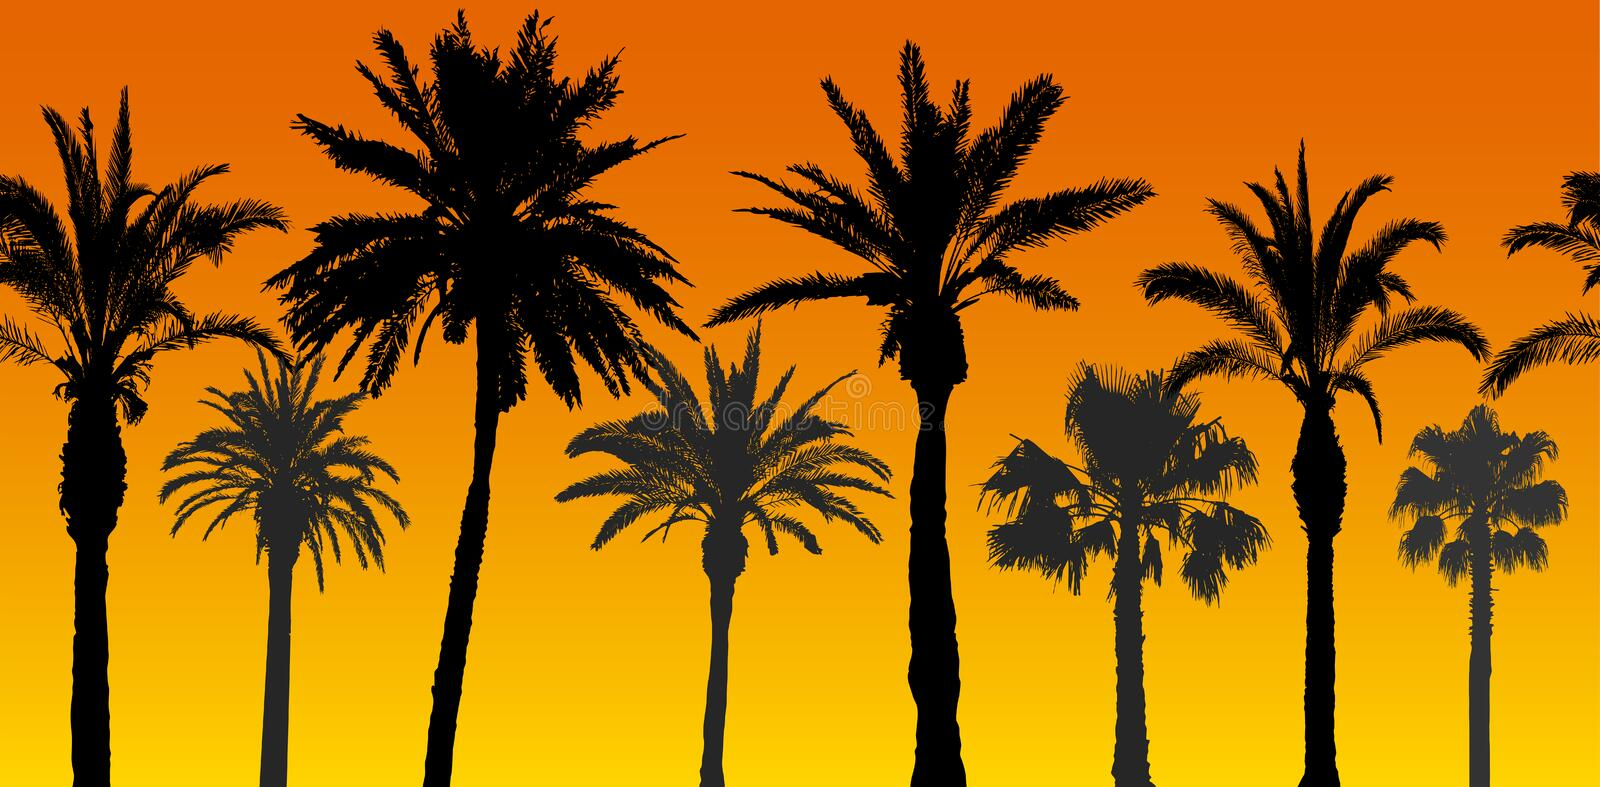 Seamless pattern of palm trees silhouettes at sunrise, vector illustration.  vector illustration